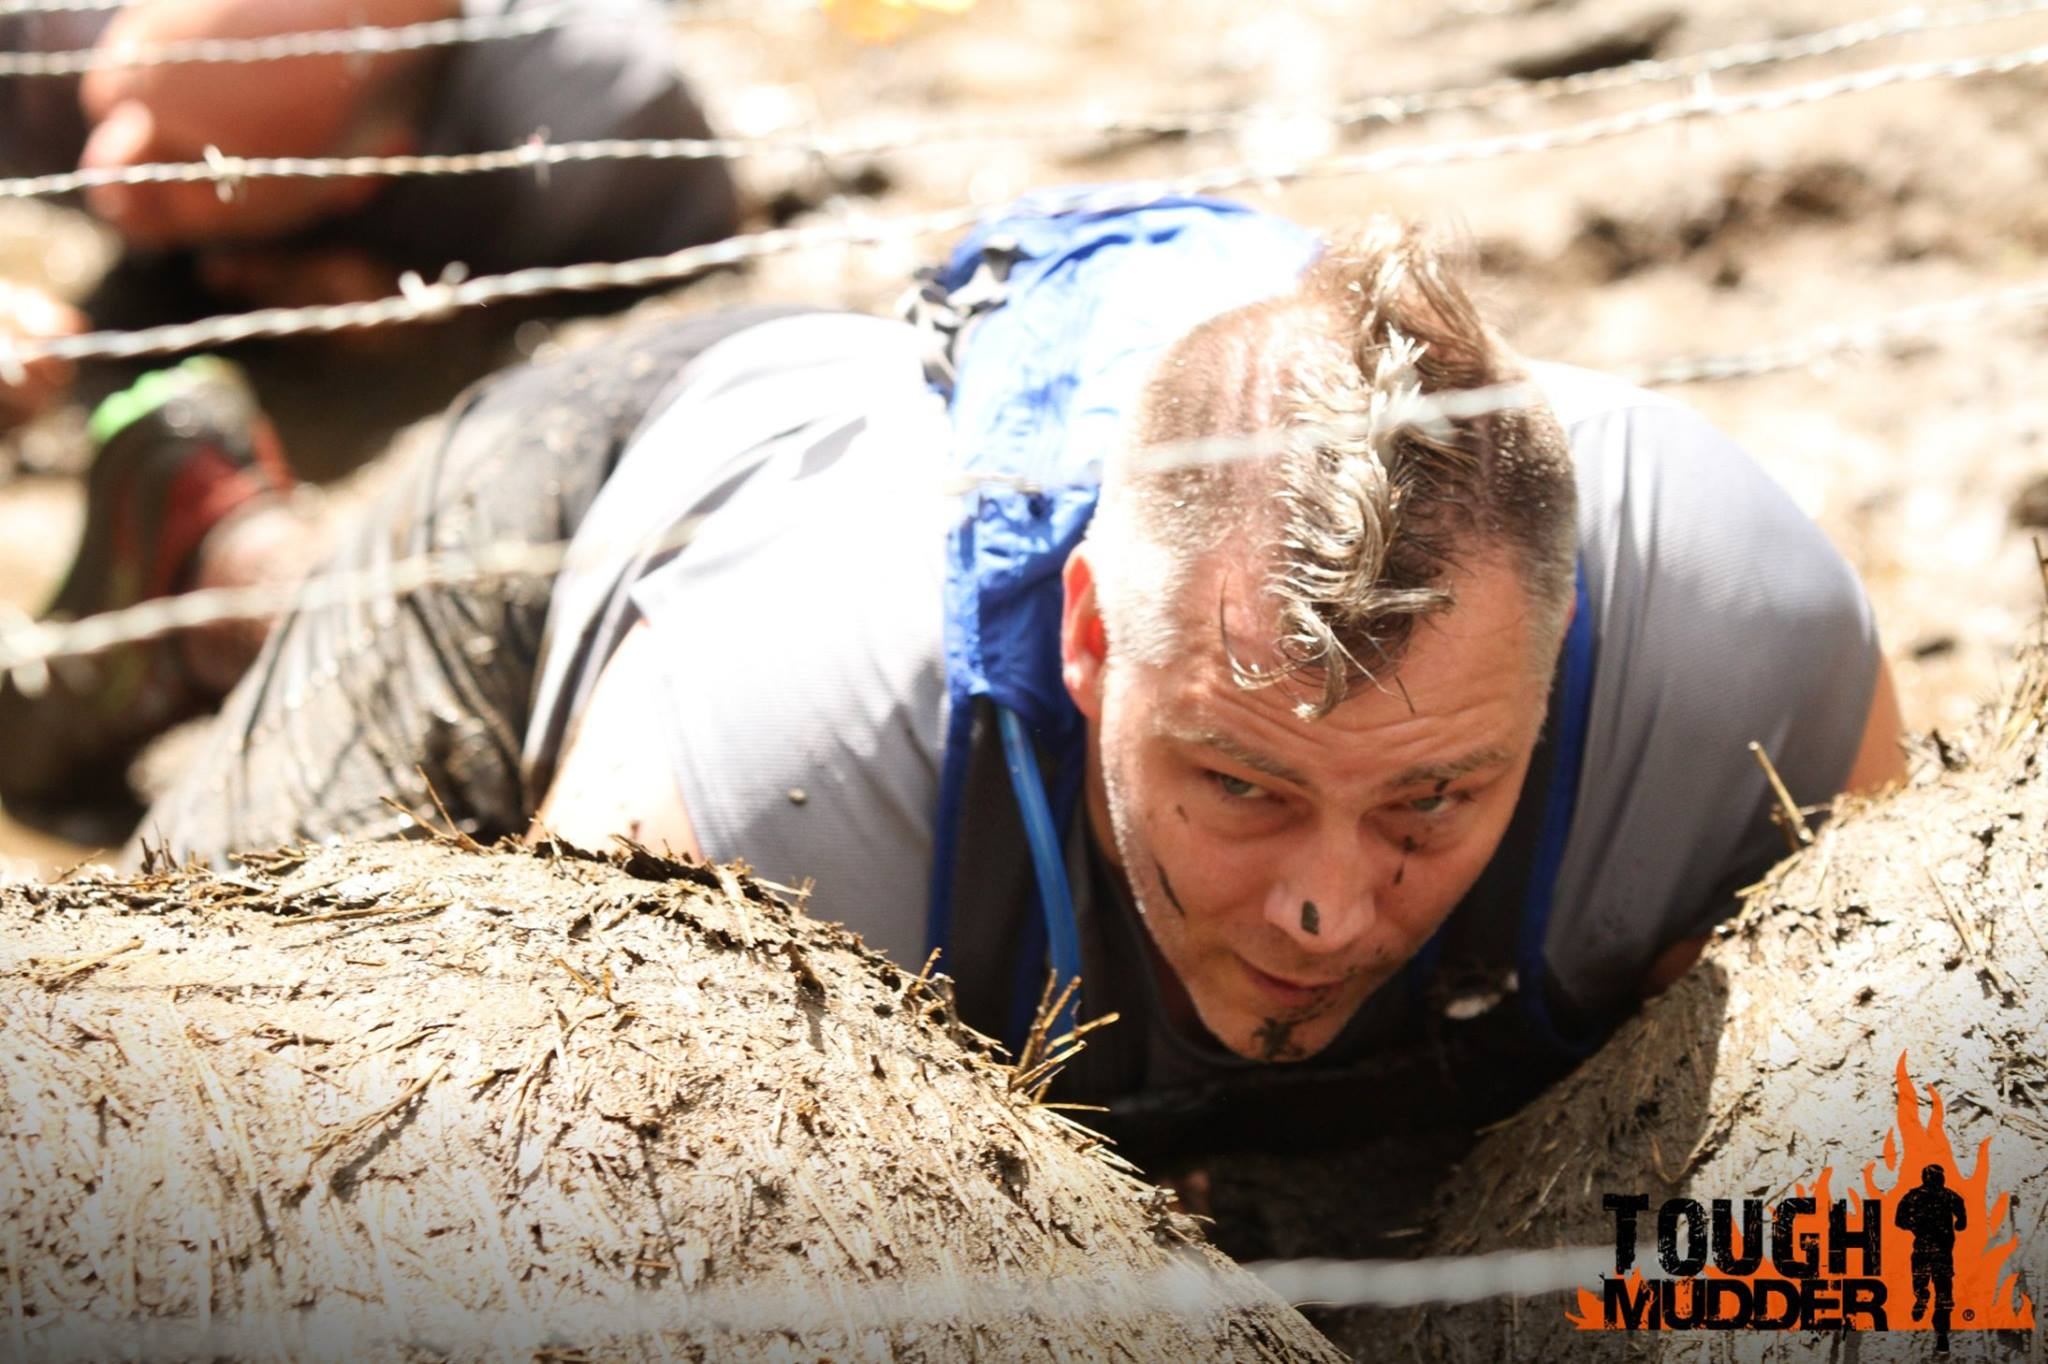 'Running' the Tough Mudder New England in 2016